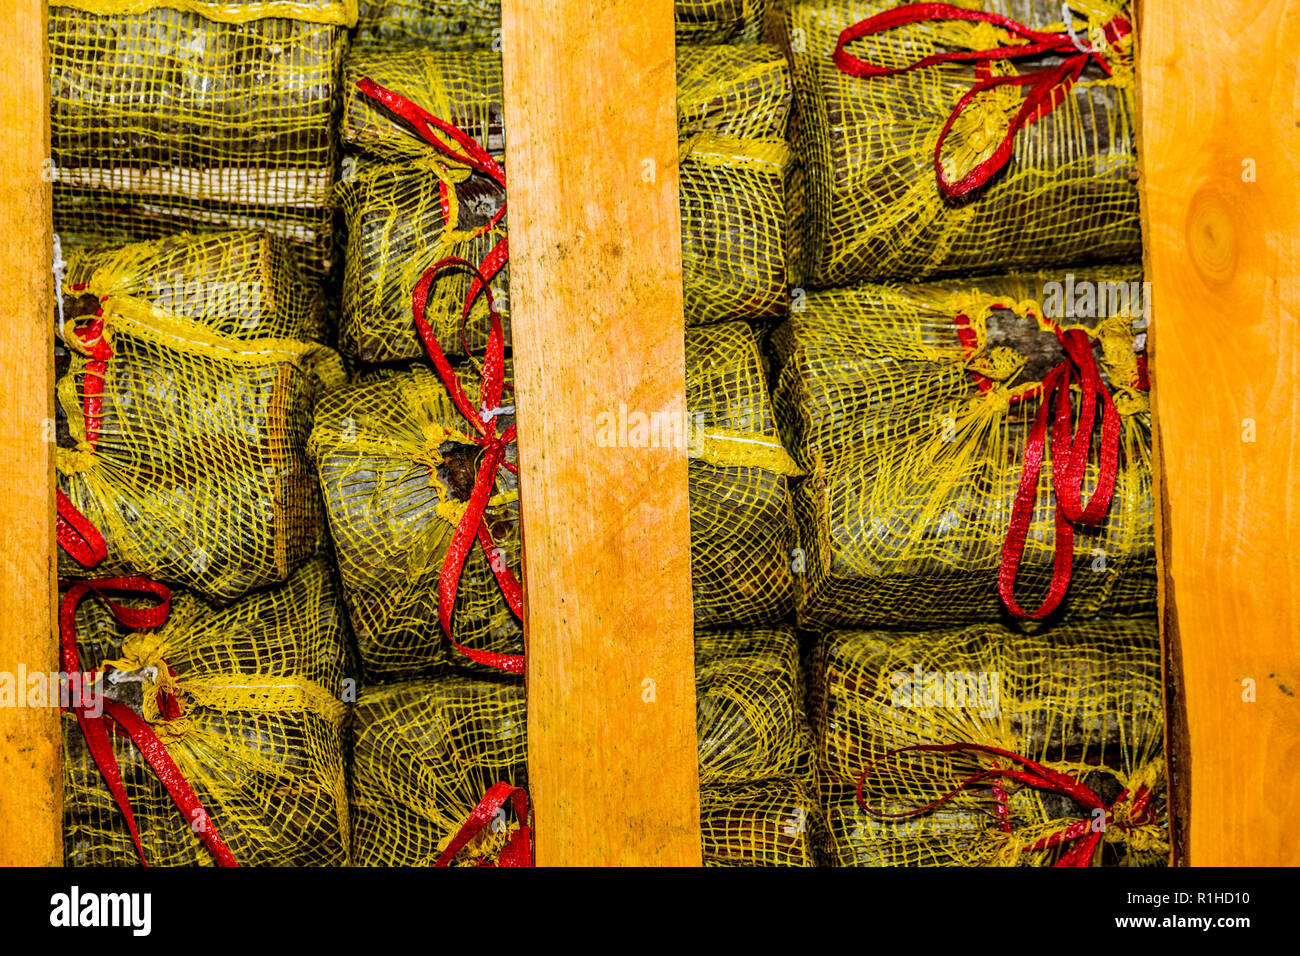 firewood logs cut and placed inside yellow sacks and tied with a red ribbon placed in a wooden container - Stock Image